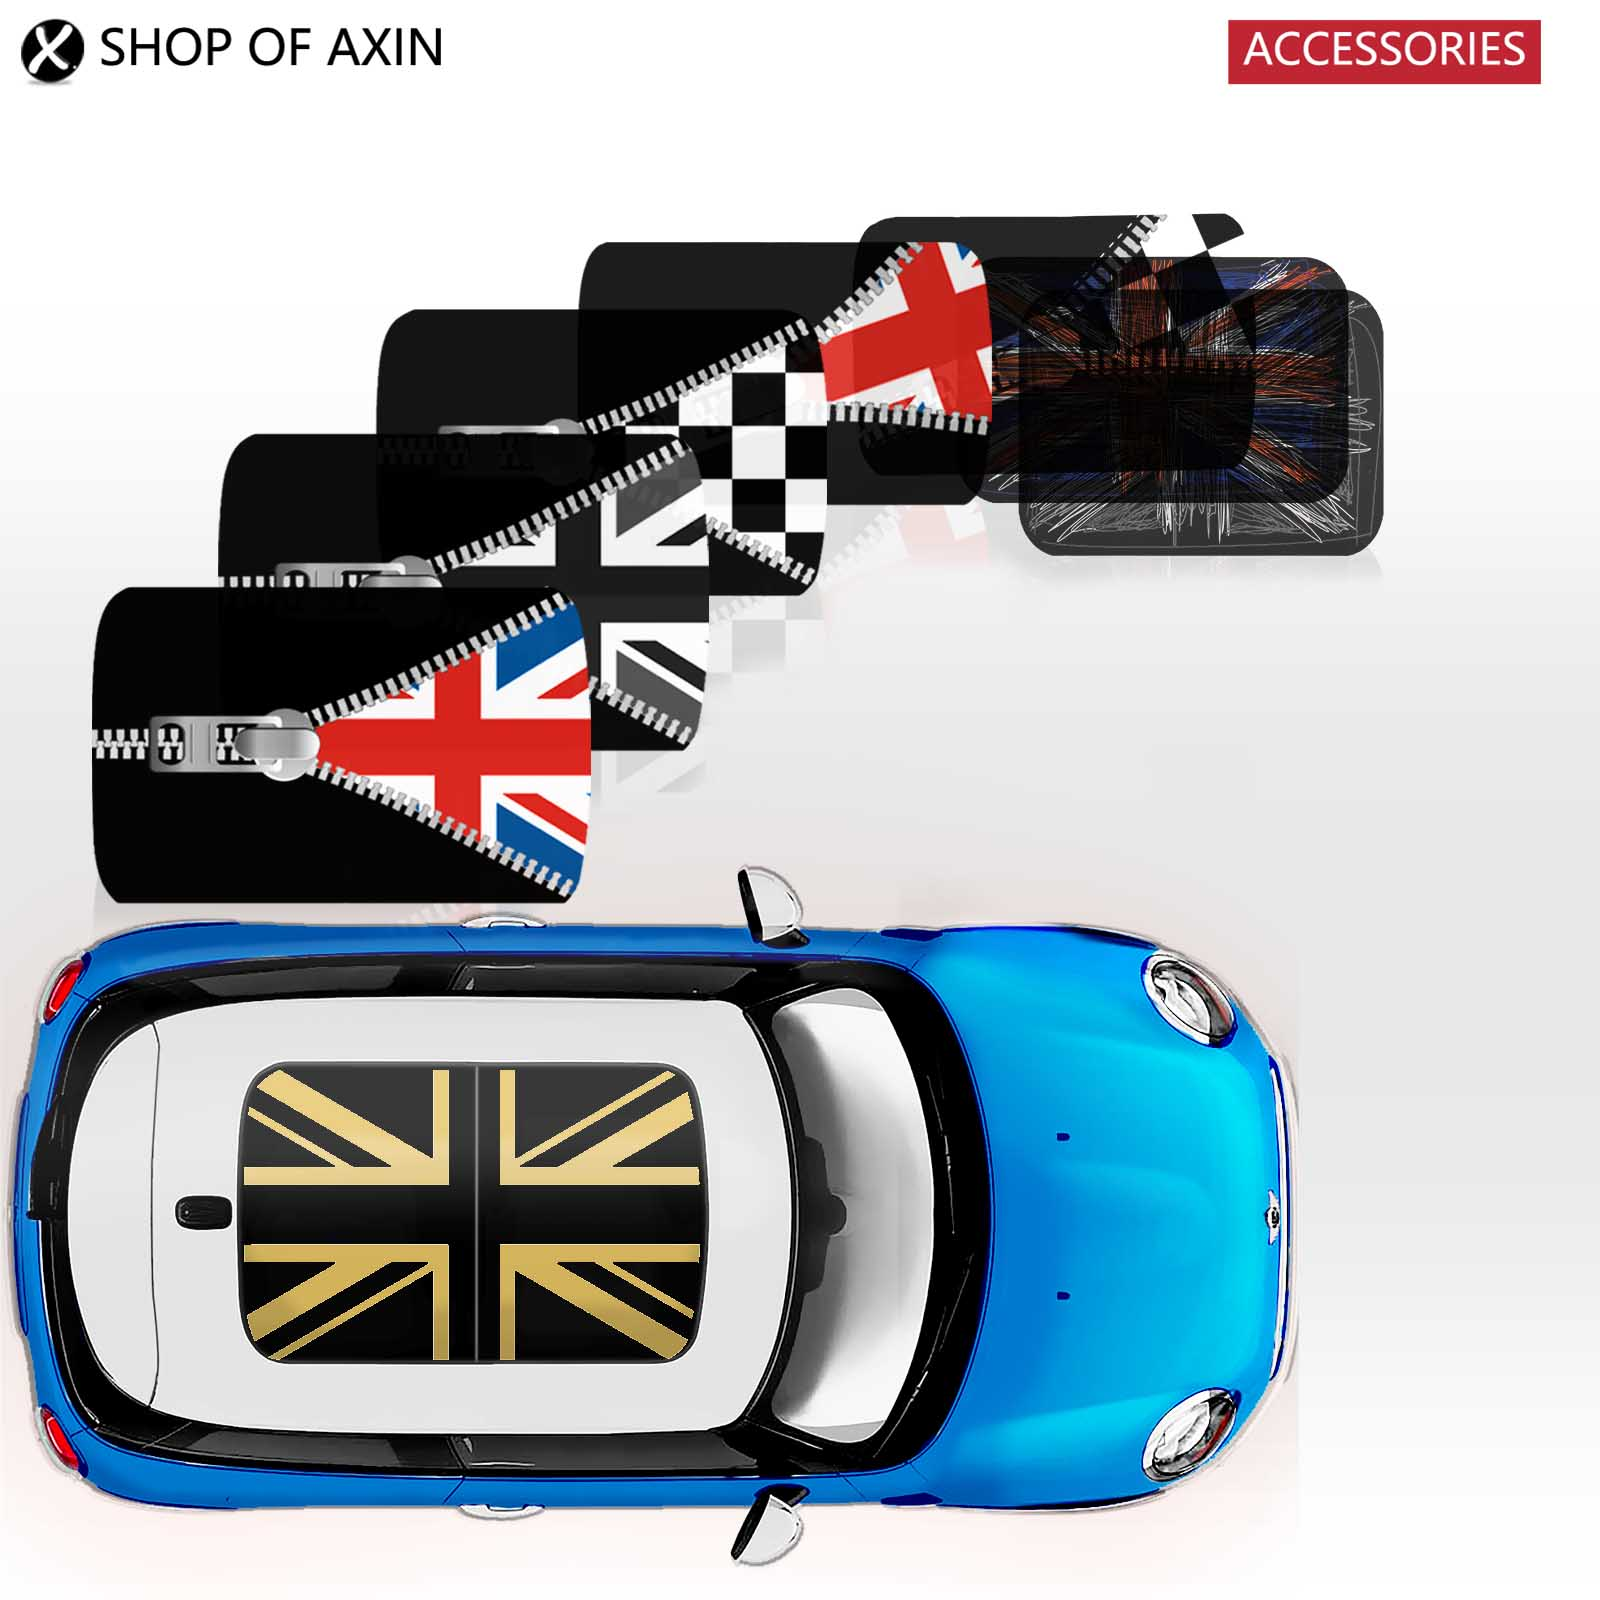 For Mini Cooper R55 R56 R60 Union Jack Tower Perforated Sunroof Vinyl Decal